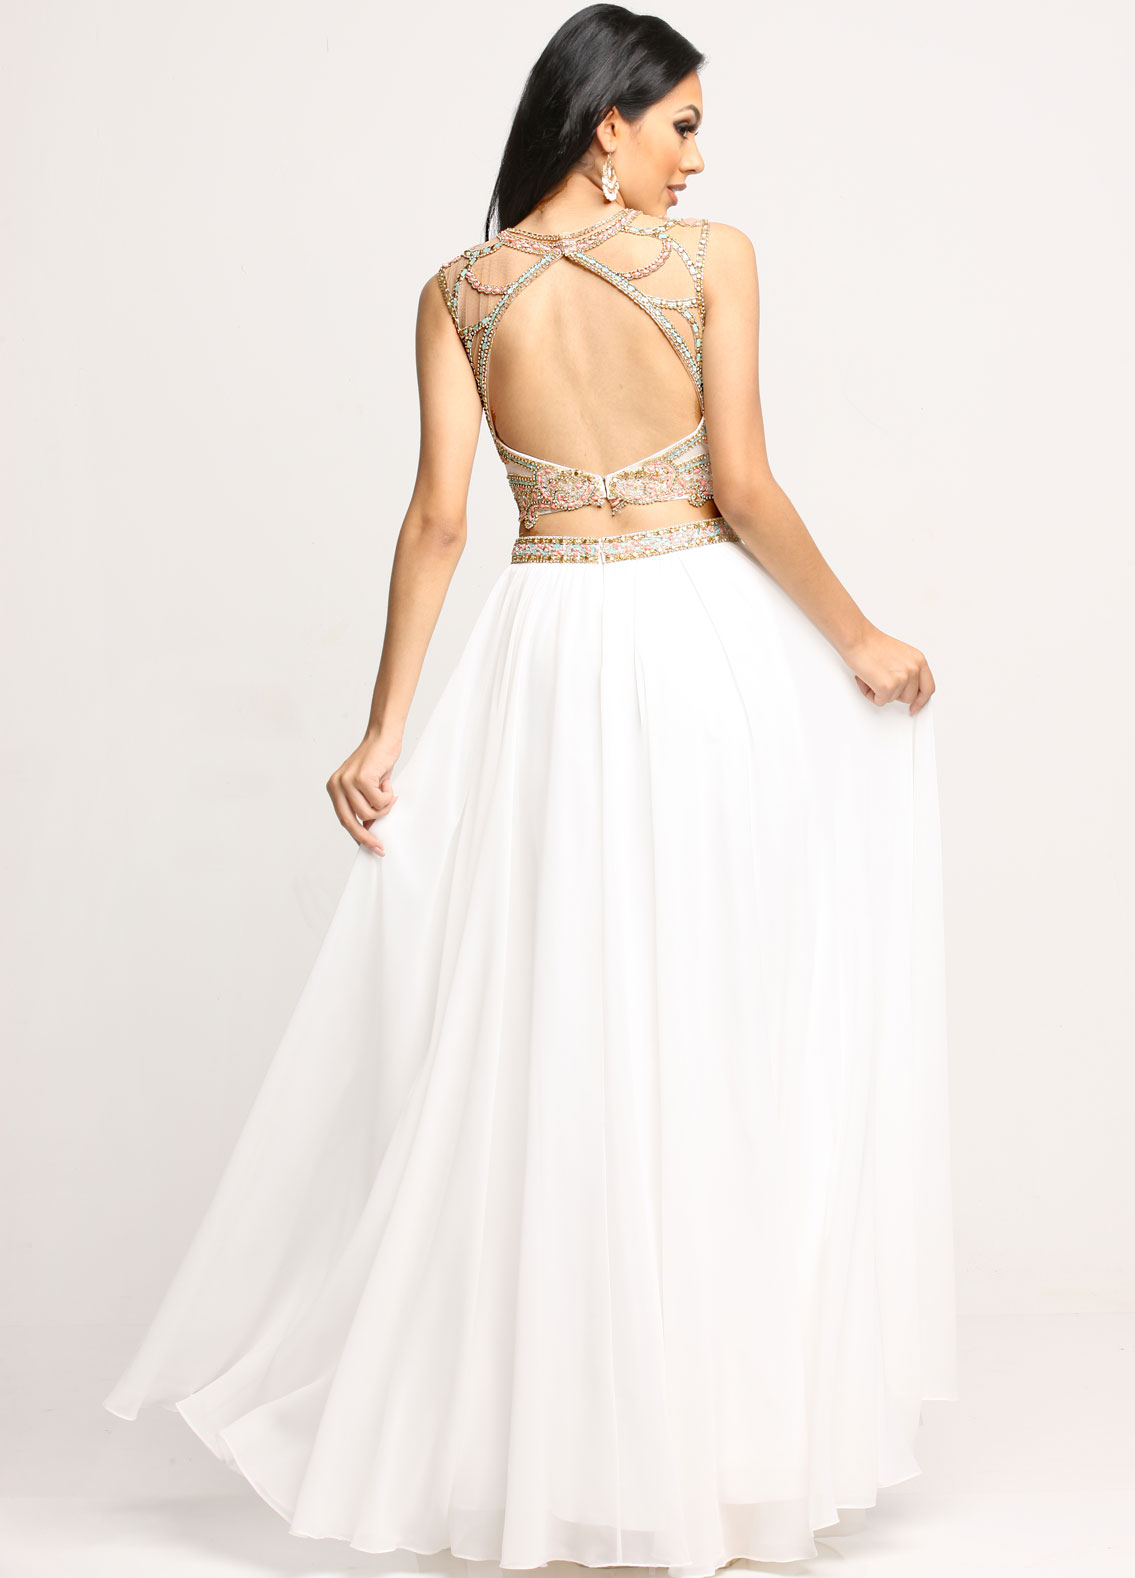 Image showing back view of style #71695